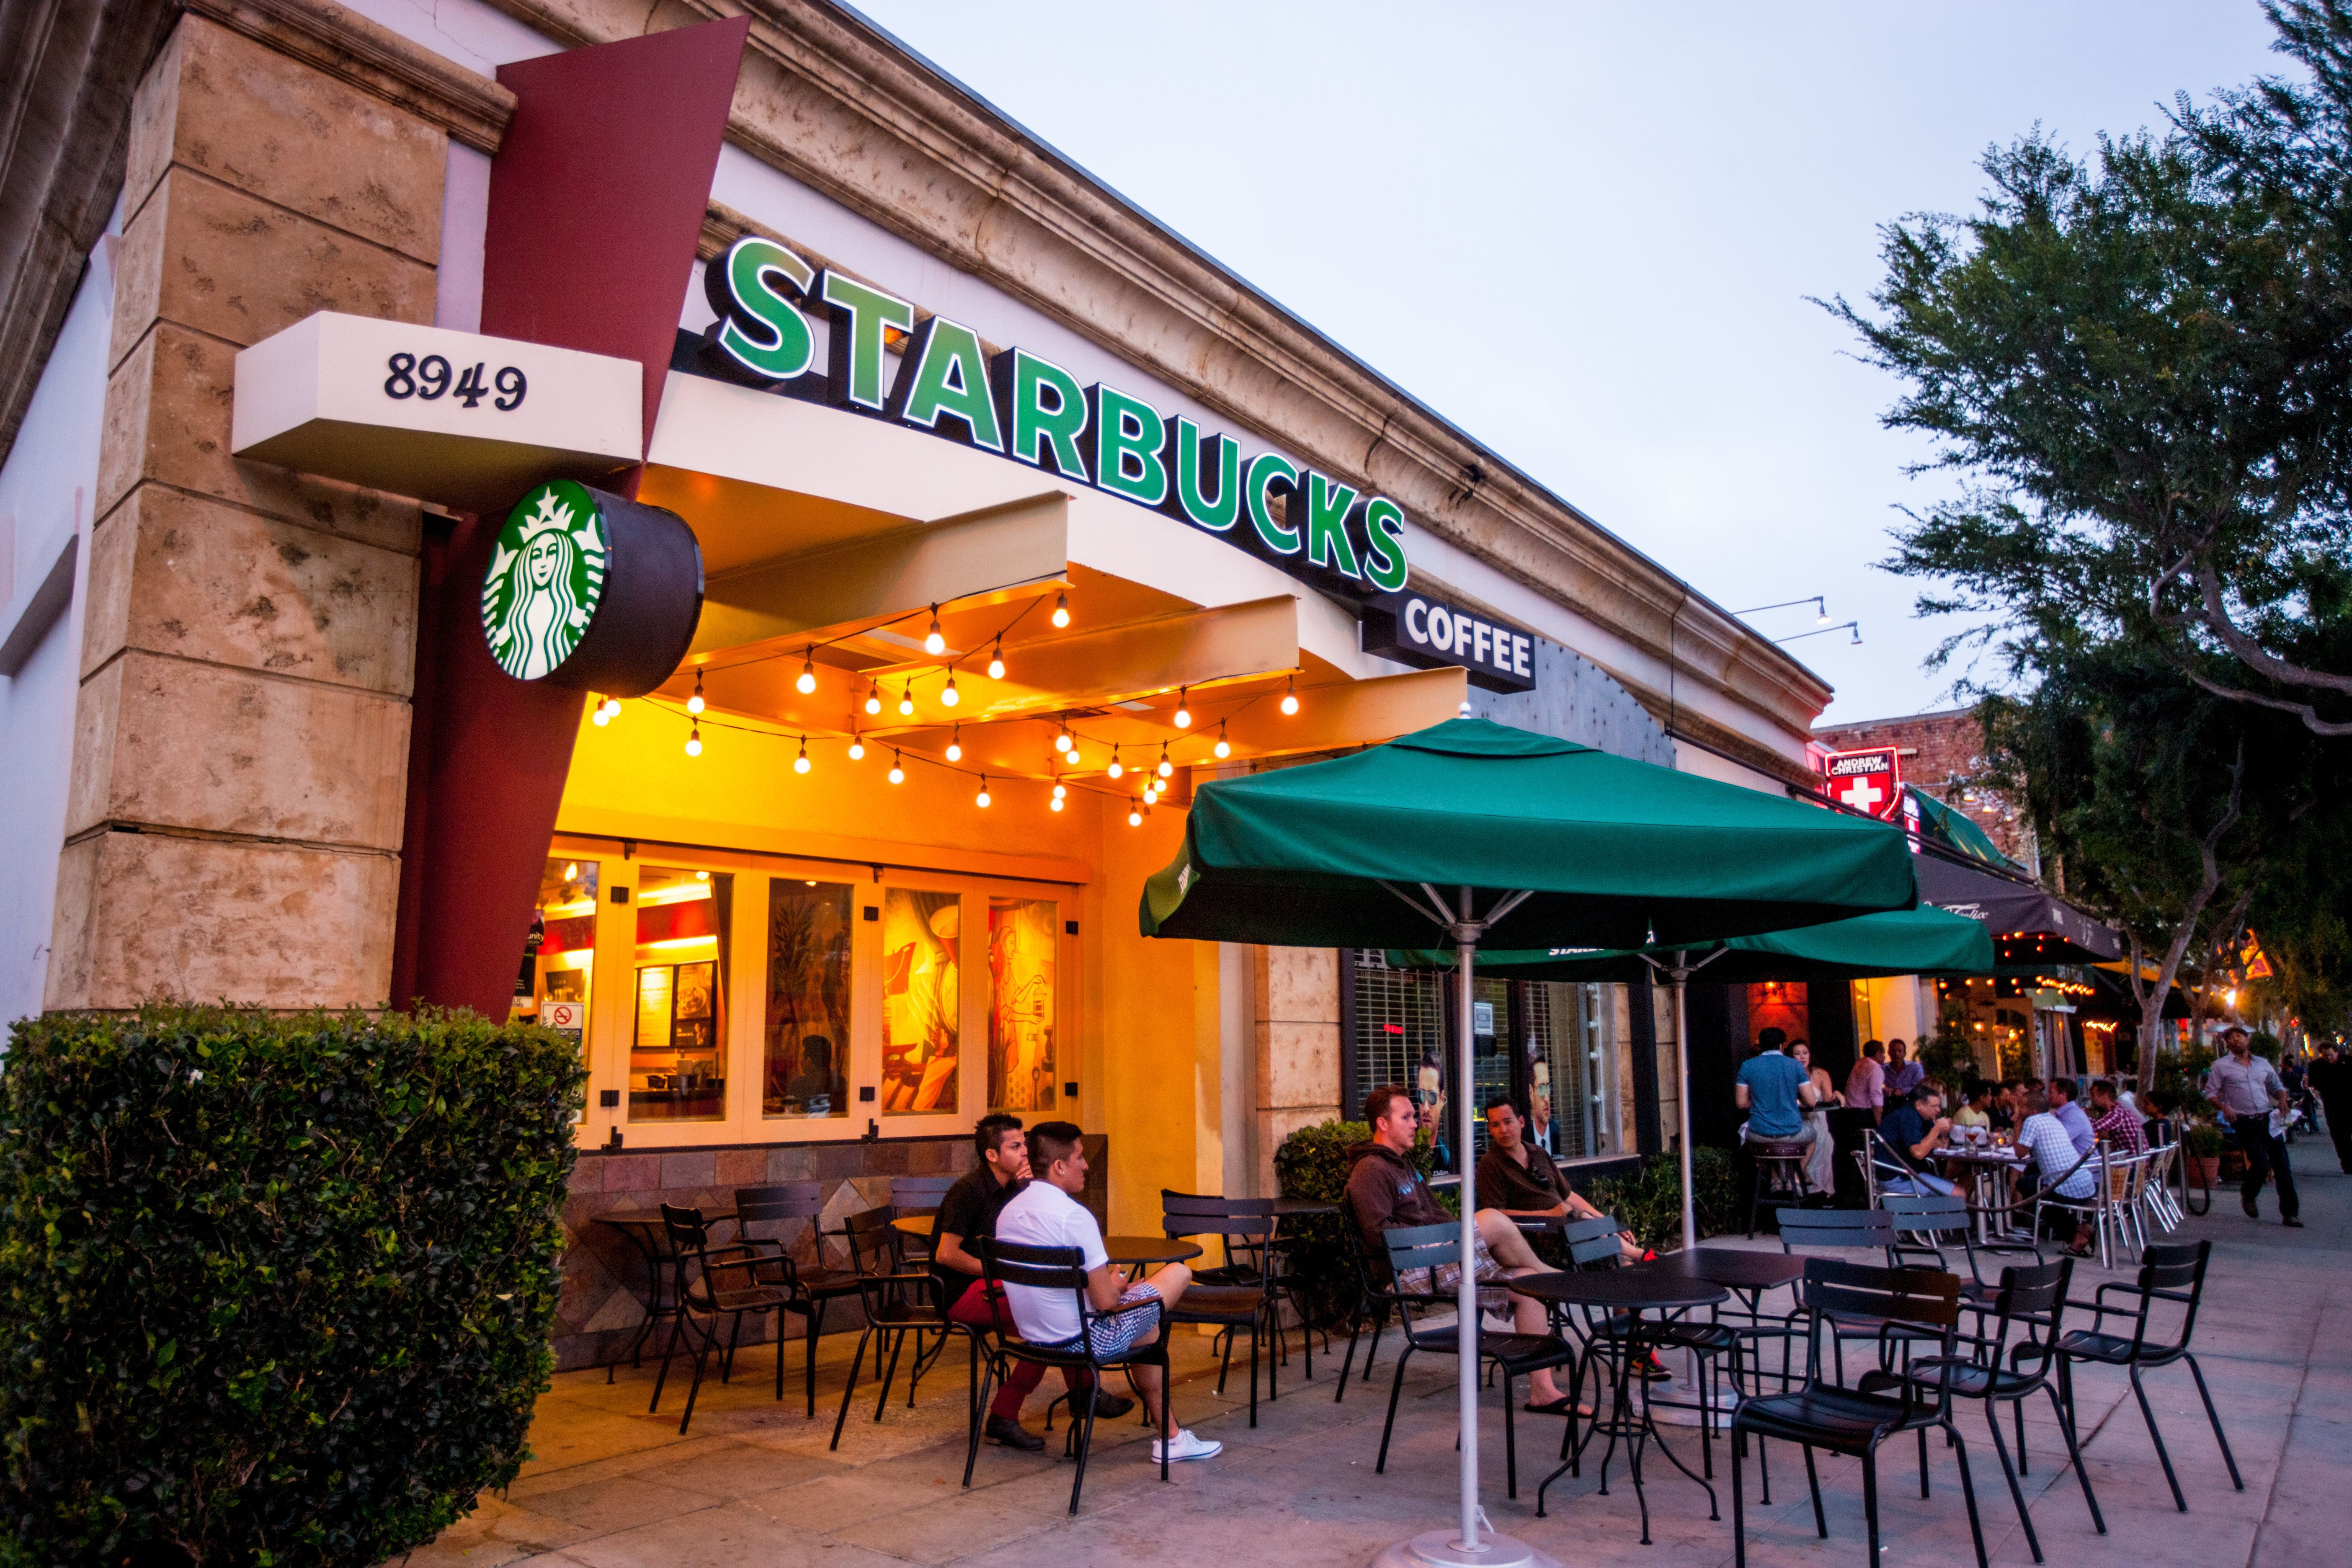 Starbucks Says Anyone Can Now Sit In Its Cafes ― Even Without Buying Anything